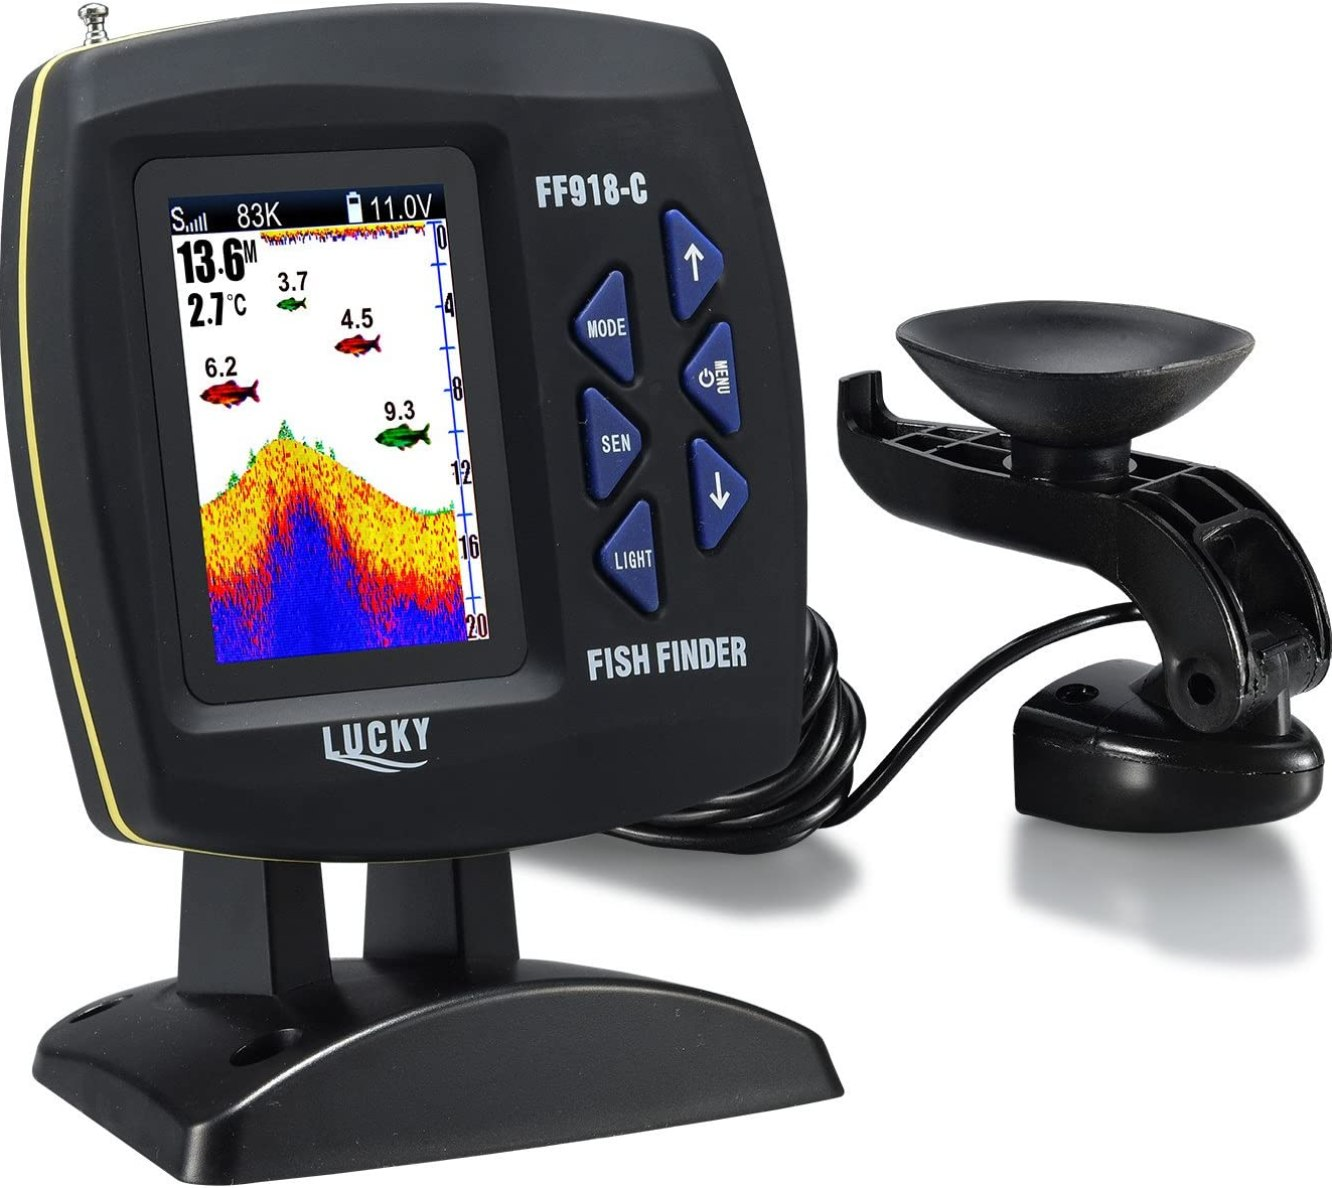 Lucky Color Screen Boat Fish Finder review